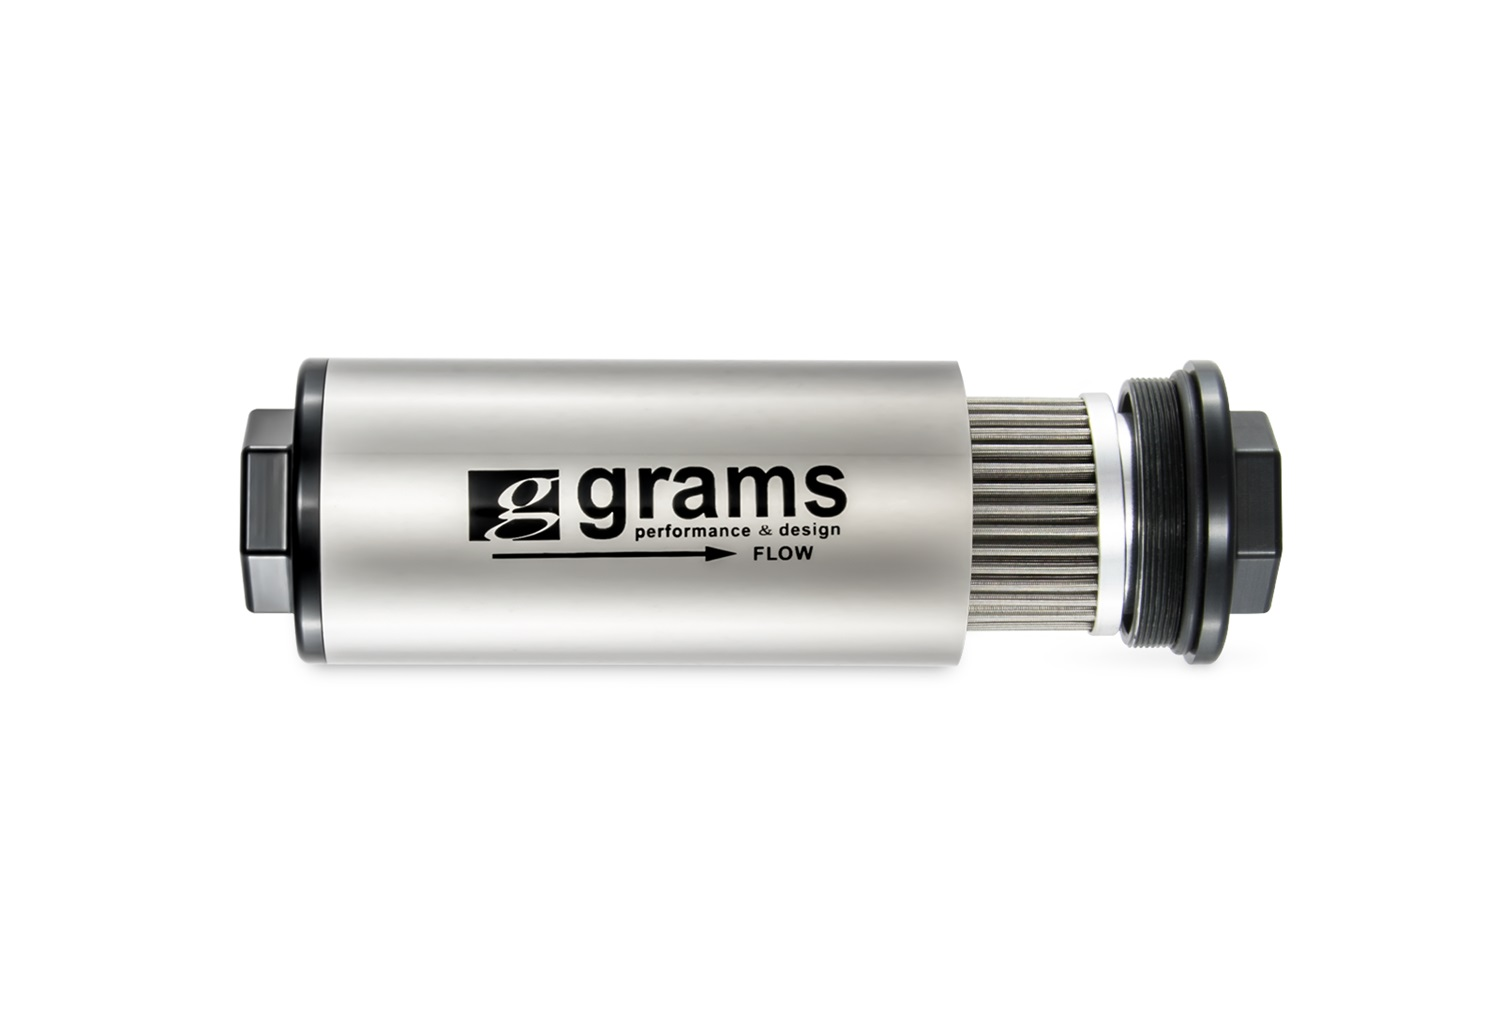 Grams Performance and Design G60-99-0108 Fuel Filter